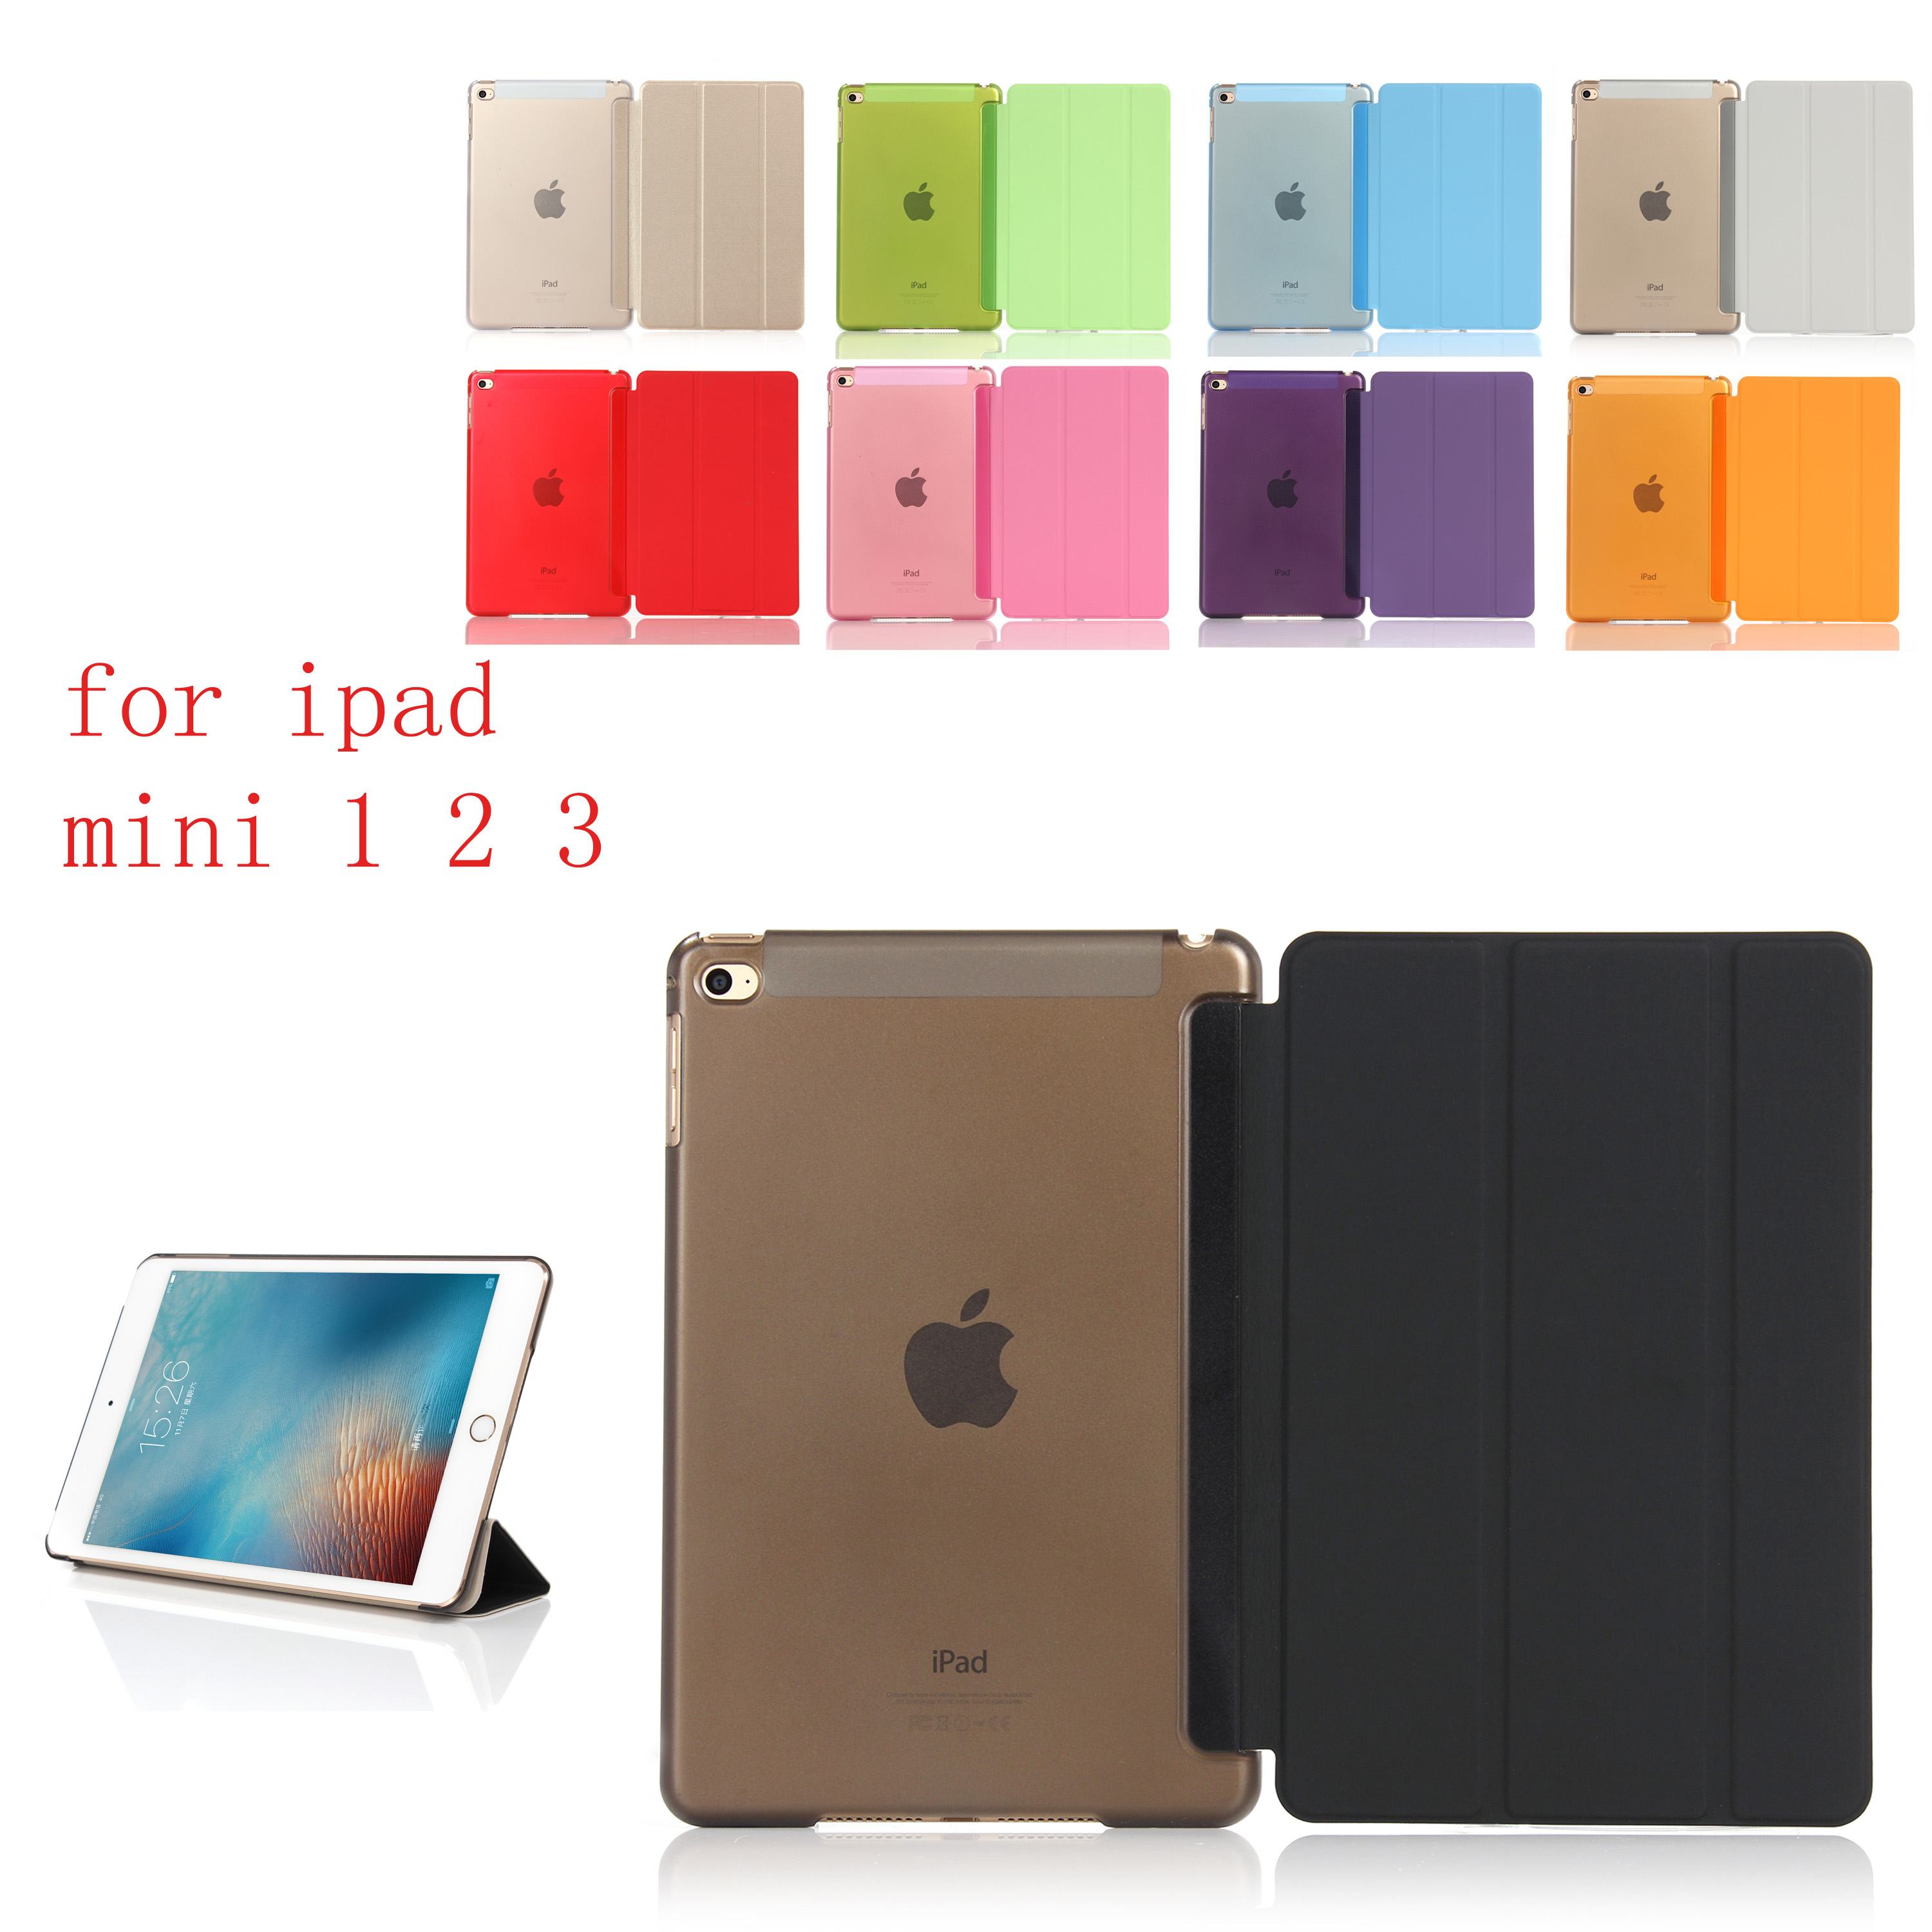 PC Leather Case for Apple iPad mini 1 2 3 Fashion Smart Cover PC translucent back Cover HUEVN for A1600 A1599 A1490 A1491 in Laptop Bags Cases from Computer Office